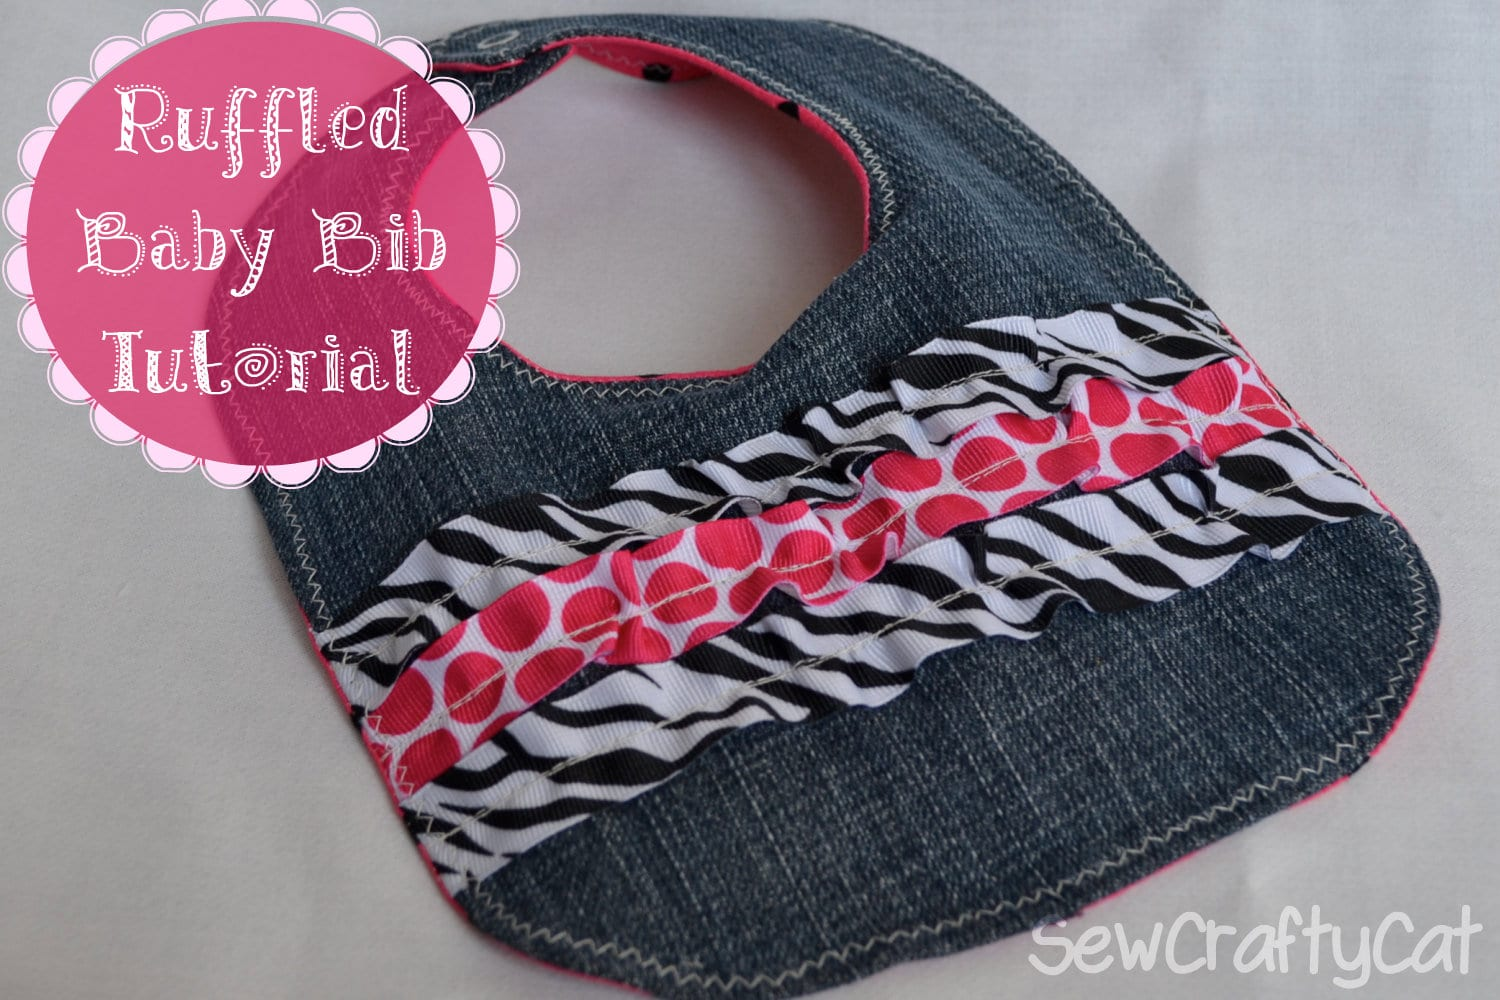 Ruffled Ribbon Denim Bib